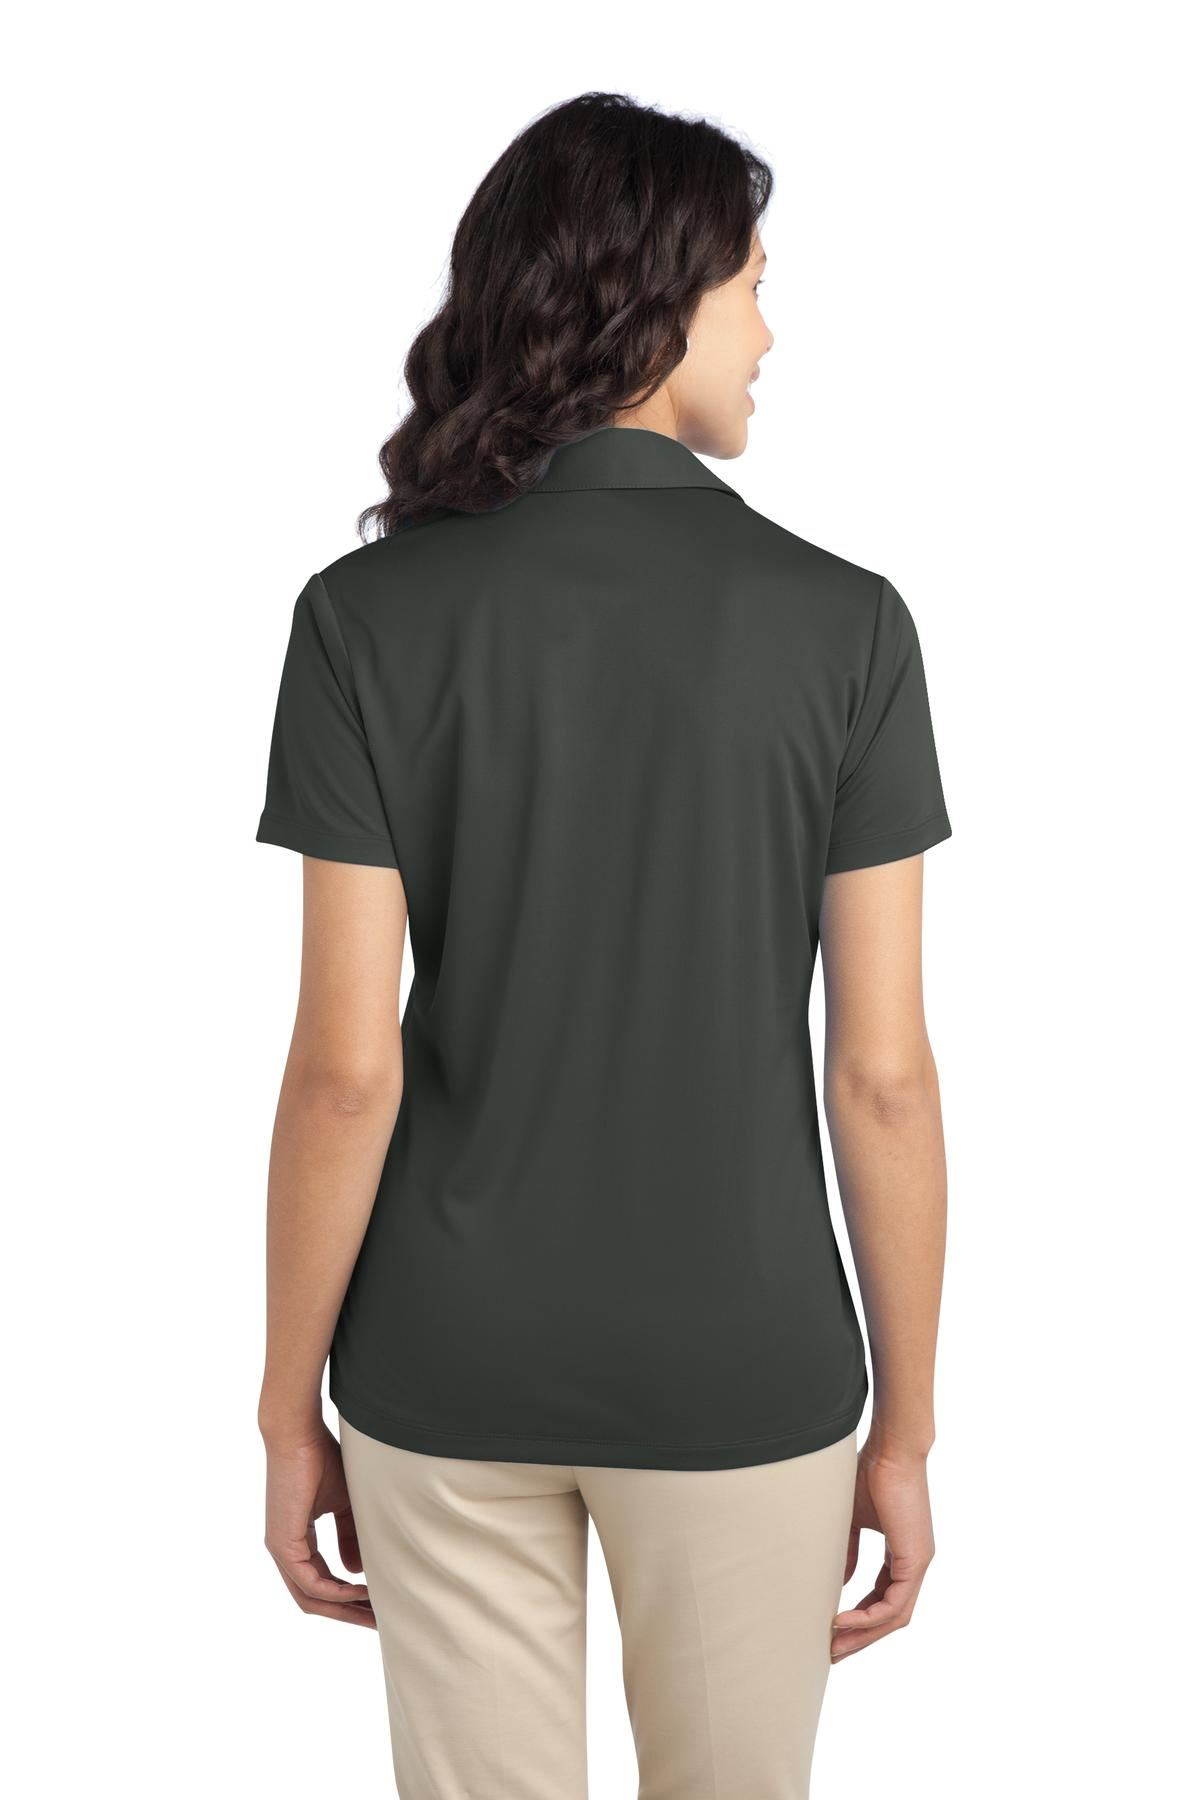 Port-Authority-Womens-Dri-Fit-SIlk-Touch-Performance-Polo-Golf-Shirt-M-L540 thumbnail 31